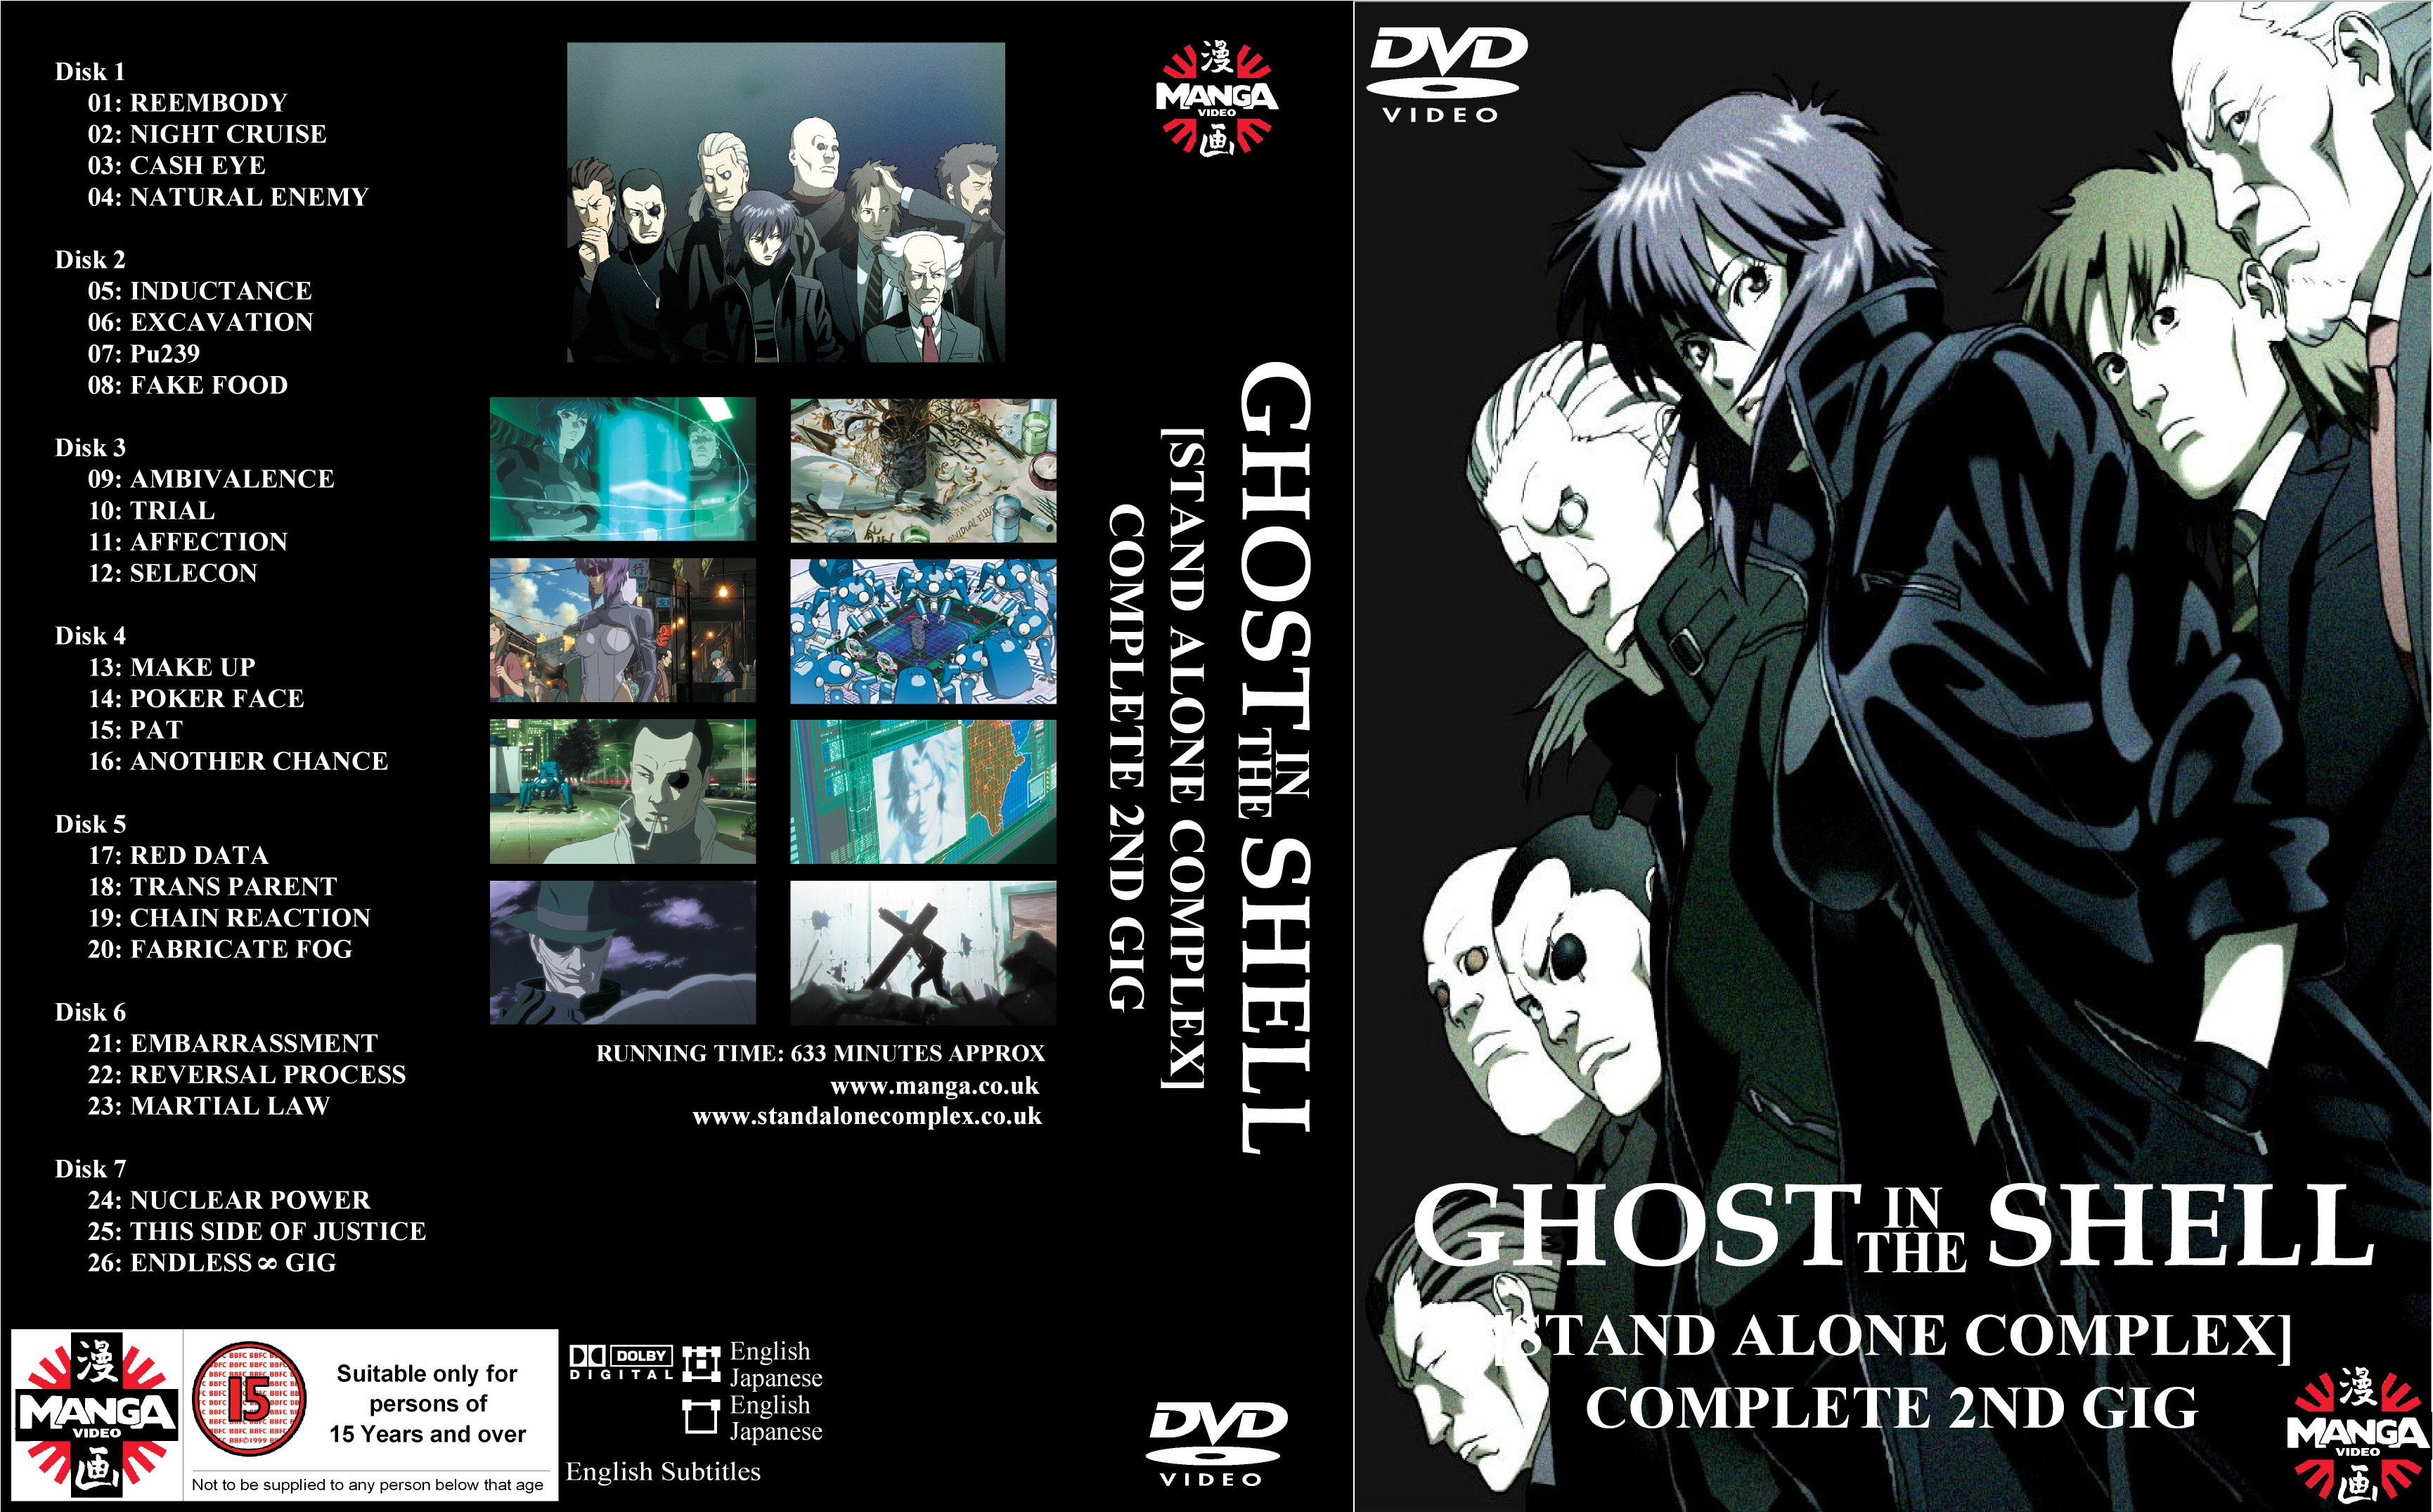 Ghost In The Shell - Stand Alone Complex 2nd GIG (2004) DvdRip .mp4 ITA